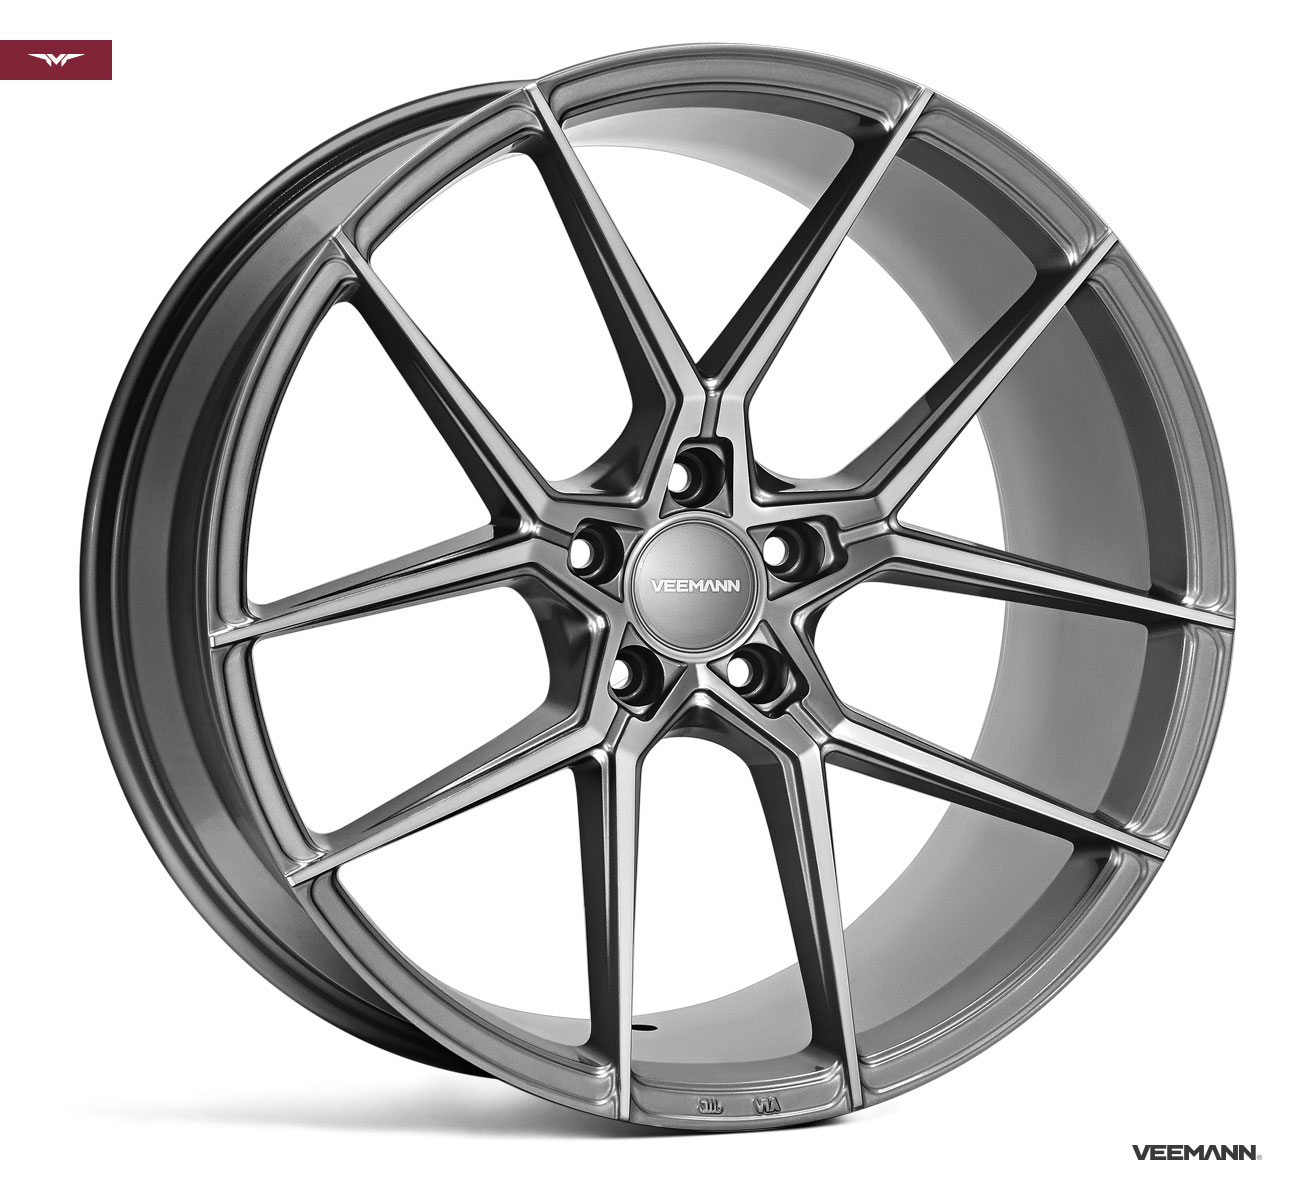 "NEW 20"" VEEMANN V-FS39 ALLOY WHEELS IN GLOSS GRAPHITE WITH WIDER 10"" REAR"